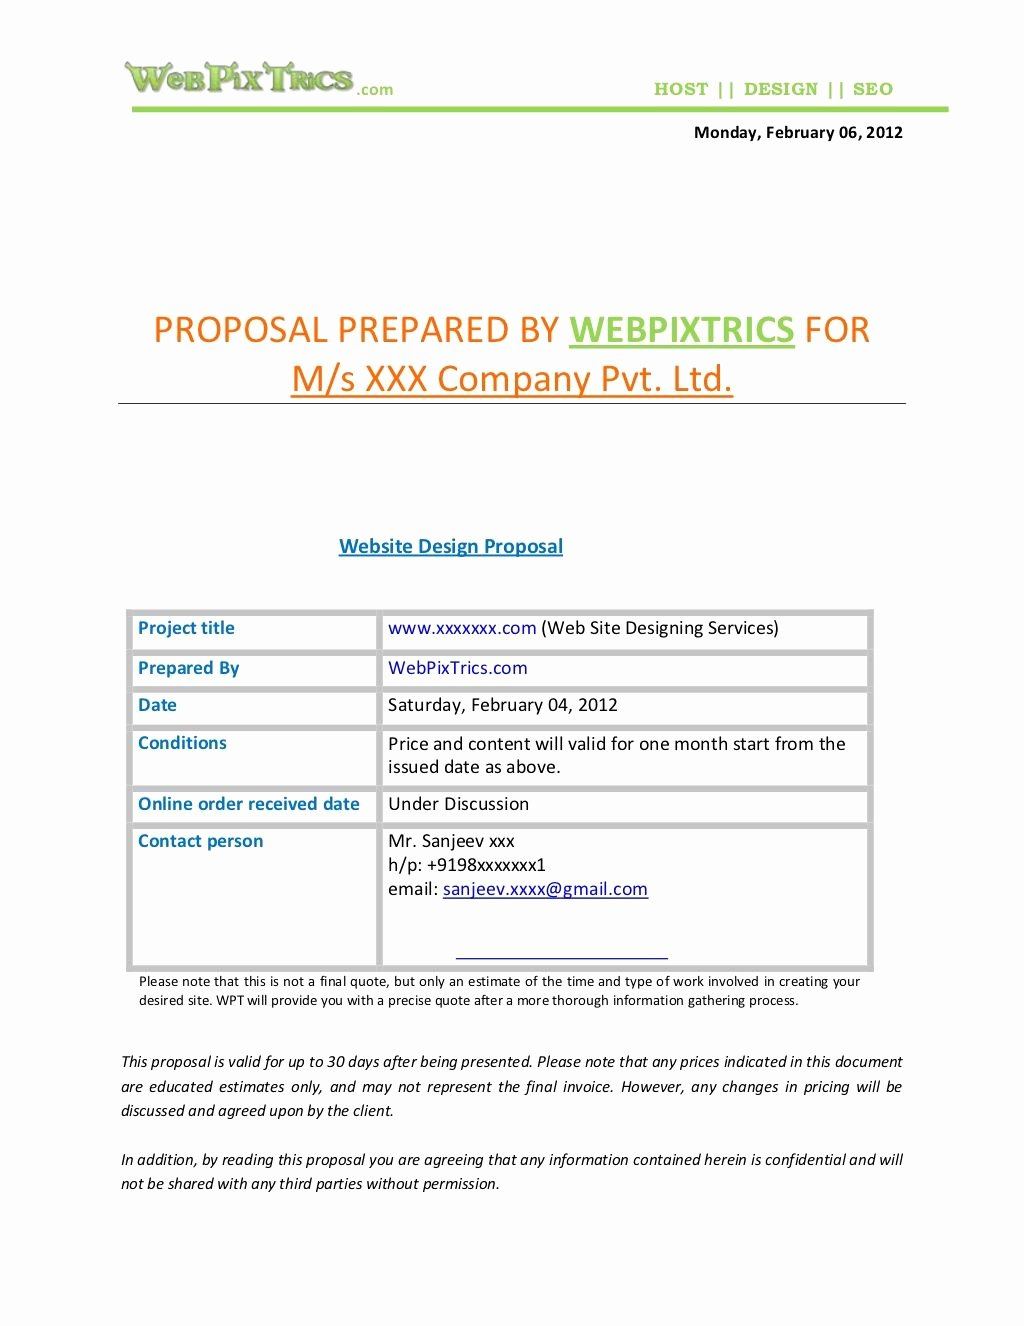 Website Proposal Template Doc Lovely Web Design Proposal Sample by Webpixtrics Via